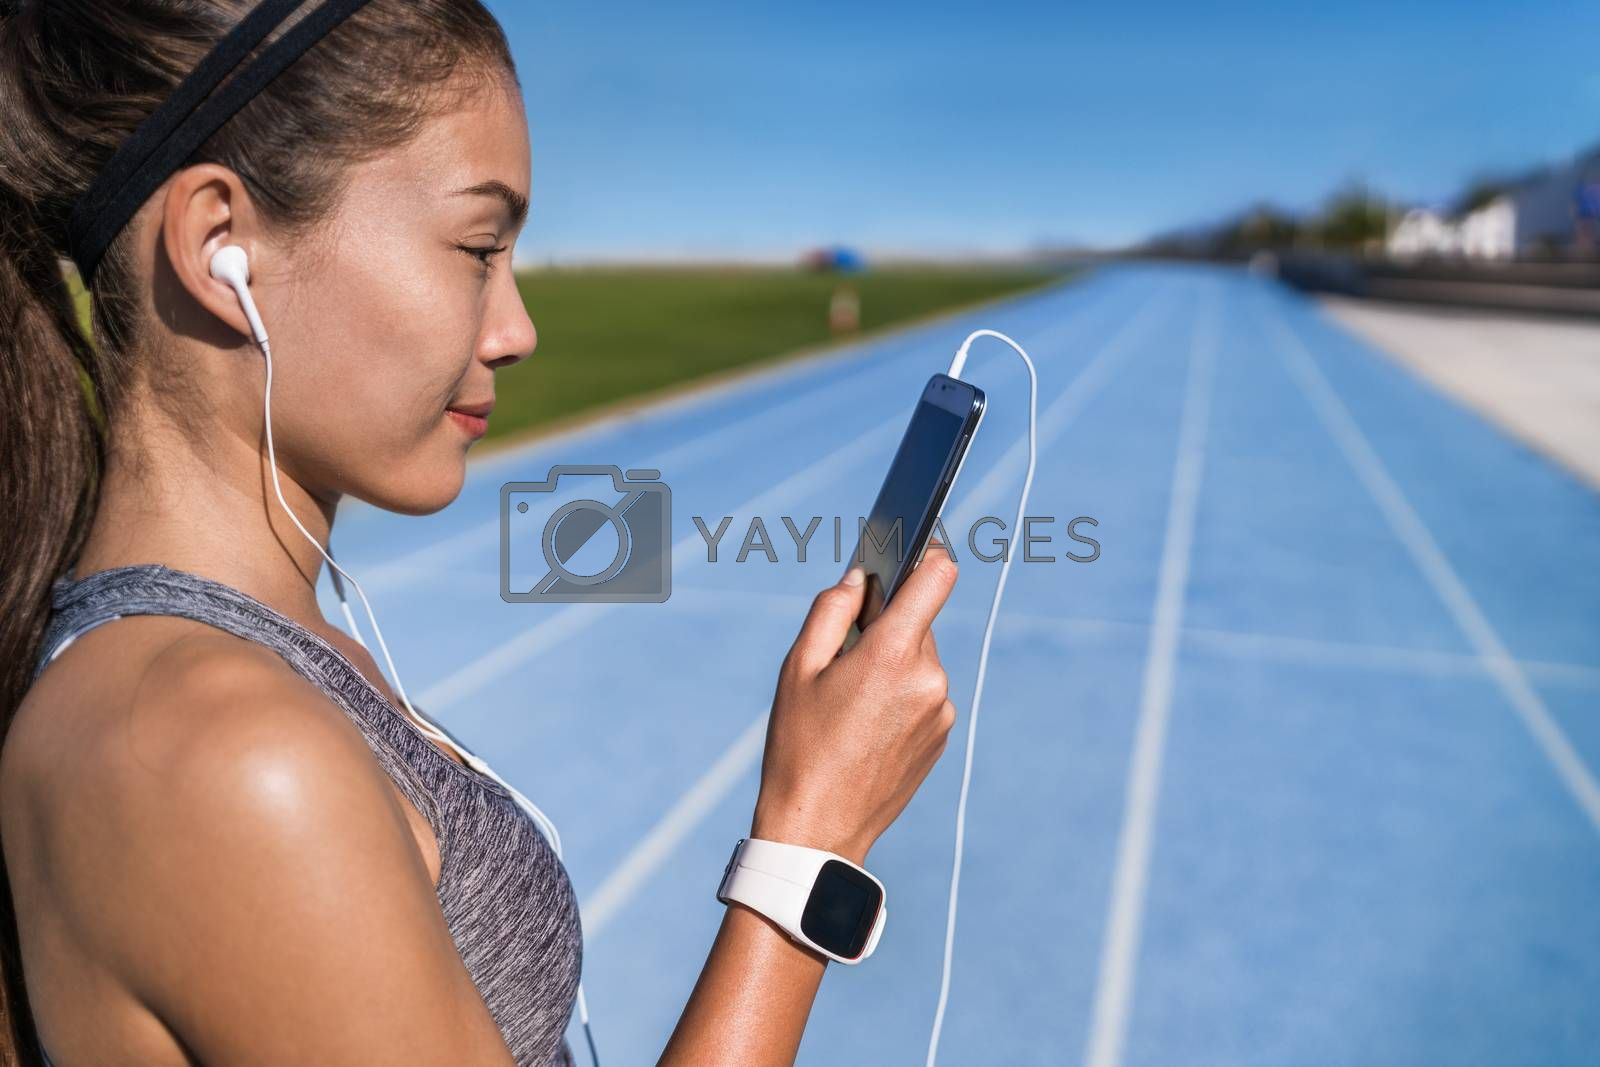 Running music motivation woman listening to phone app with headphones. Runner looking at smartphone on stadium running track with earphones and mobile phone ready to run. Healthy lifestyle.